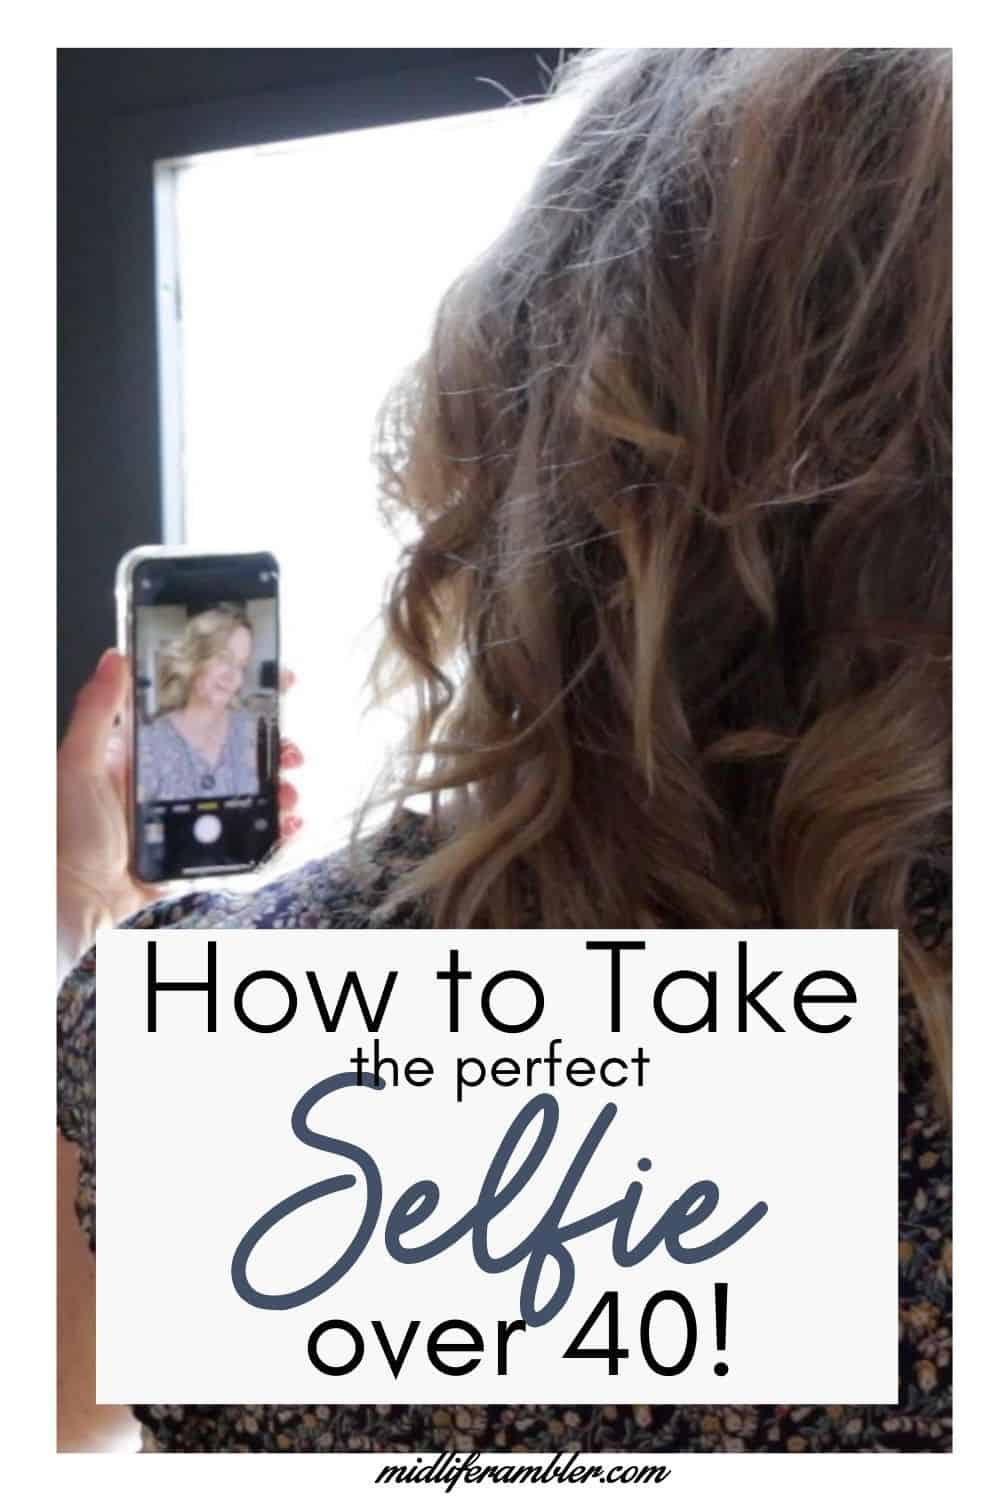 How to Take a Good Selfie Over 40 14